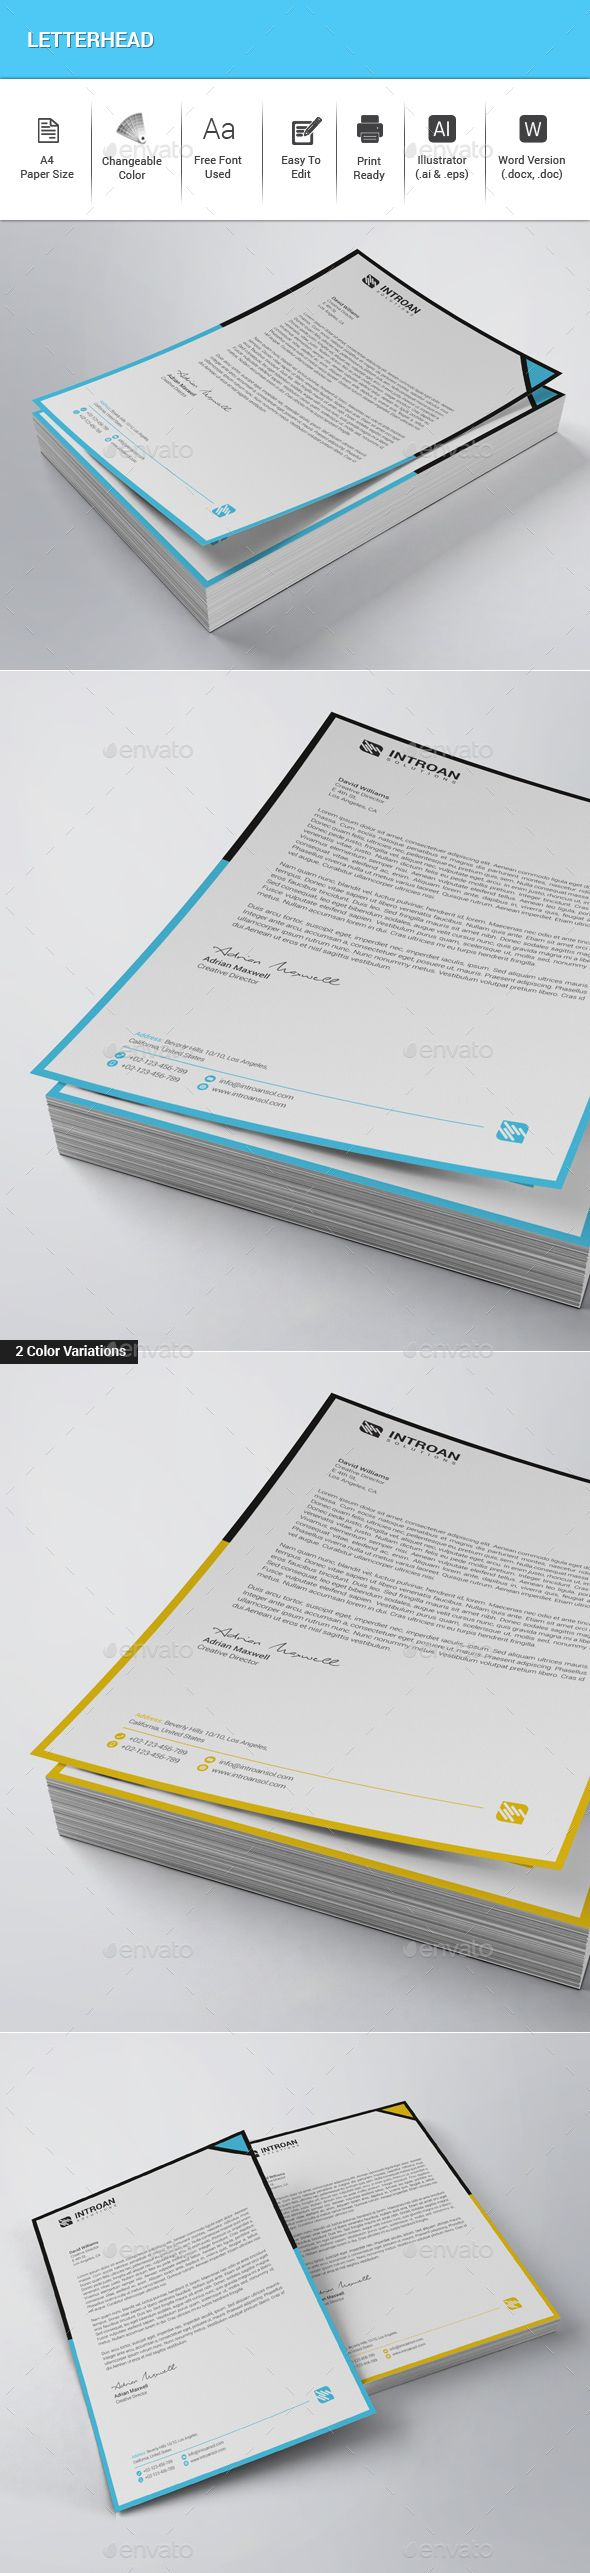 letter format on letterhead%0A Buy Letterhead by sawonahmed on GraphicRiver